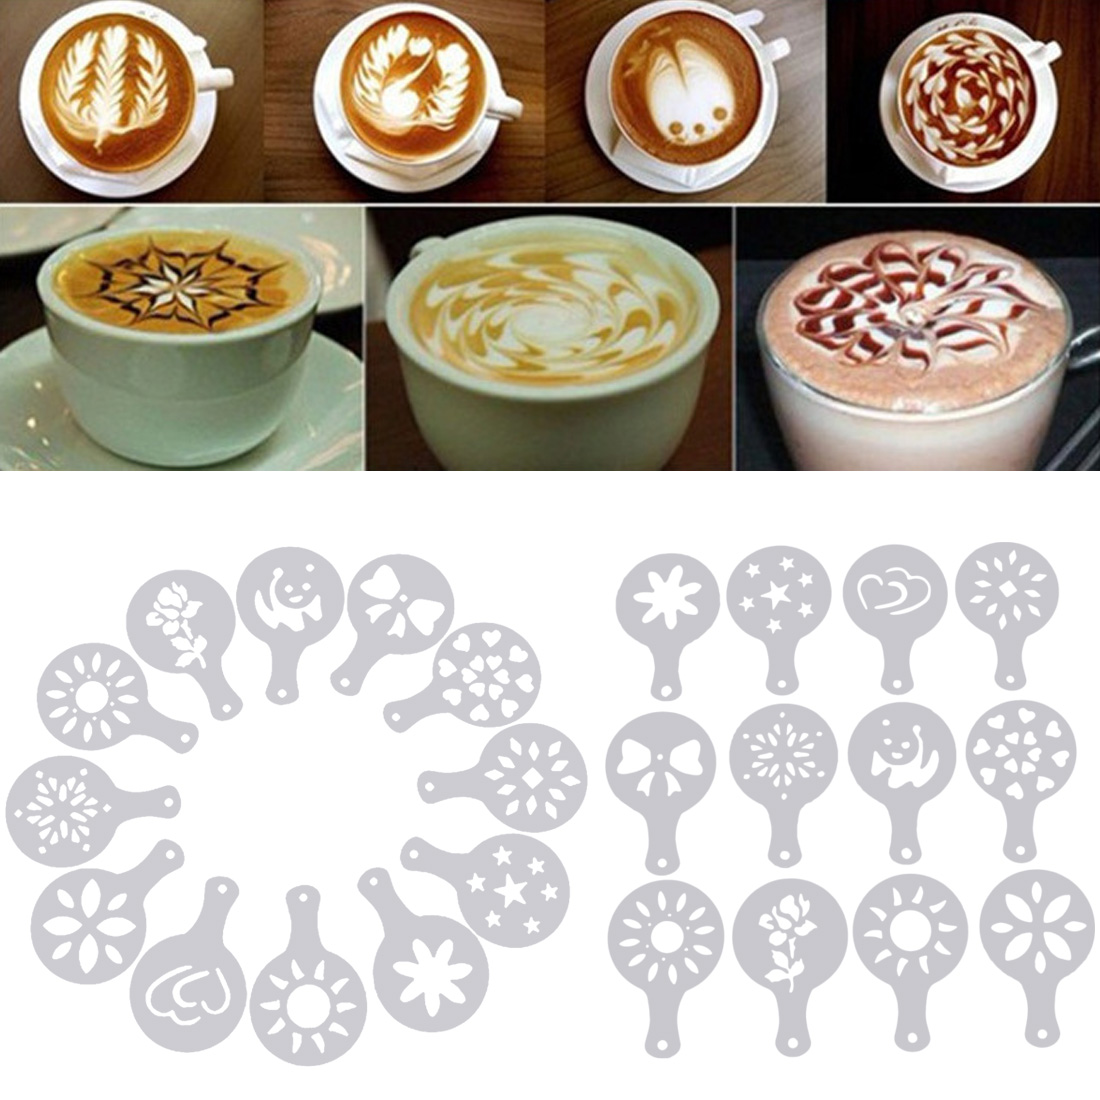 12pc Cappuccino Barista Art Drawing Coffee Stencils Foam Spray  Templates Stencils Cake Duster  Coffee Printing Mold